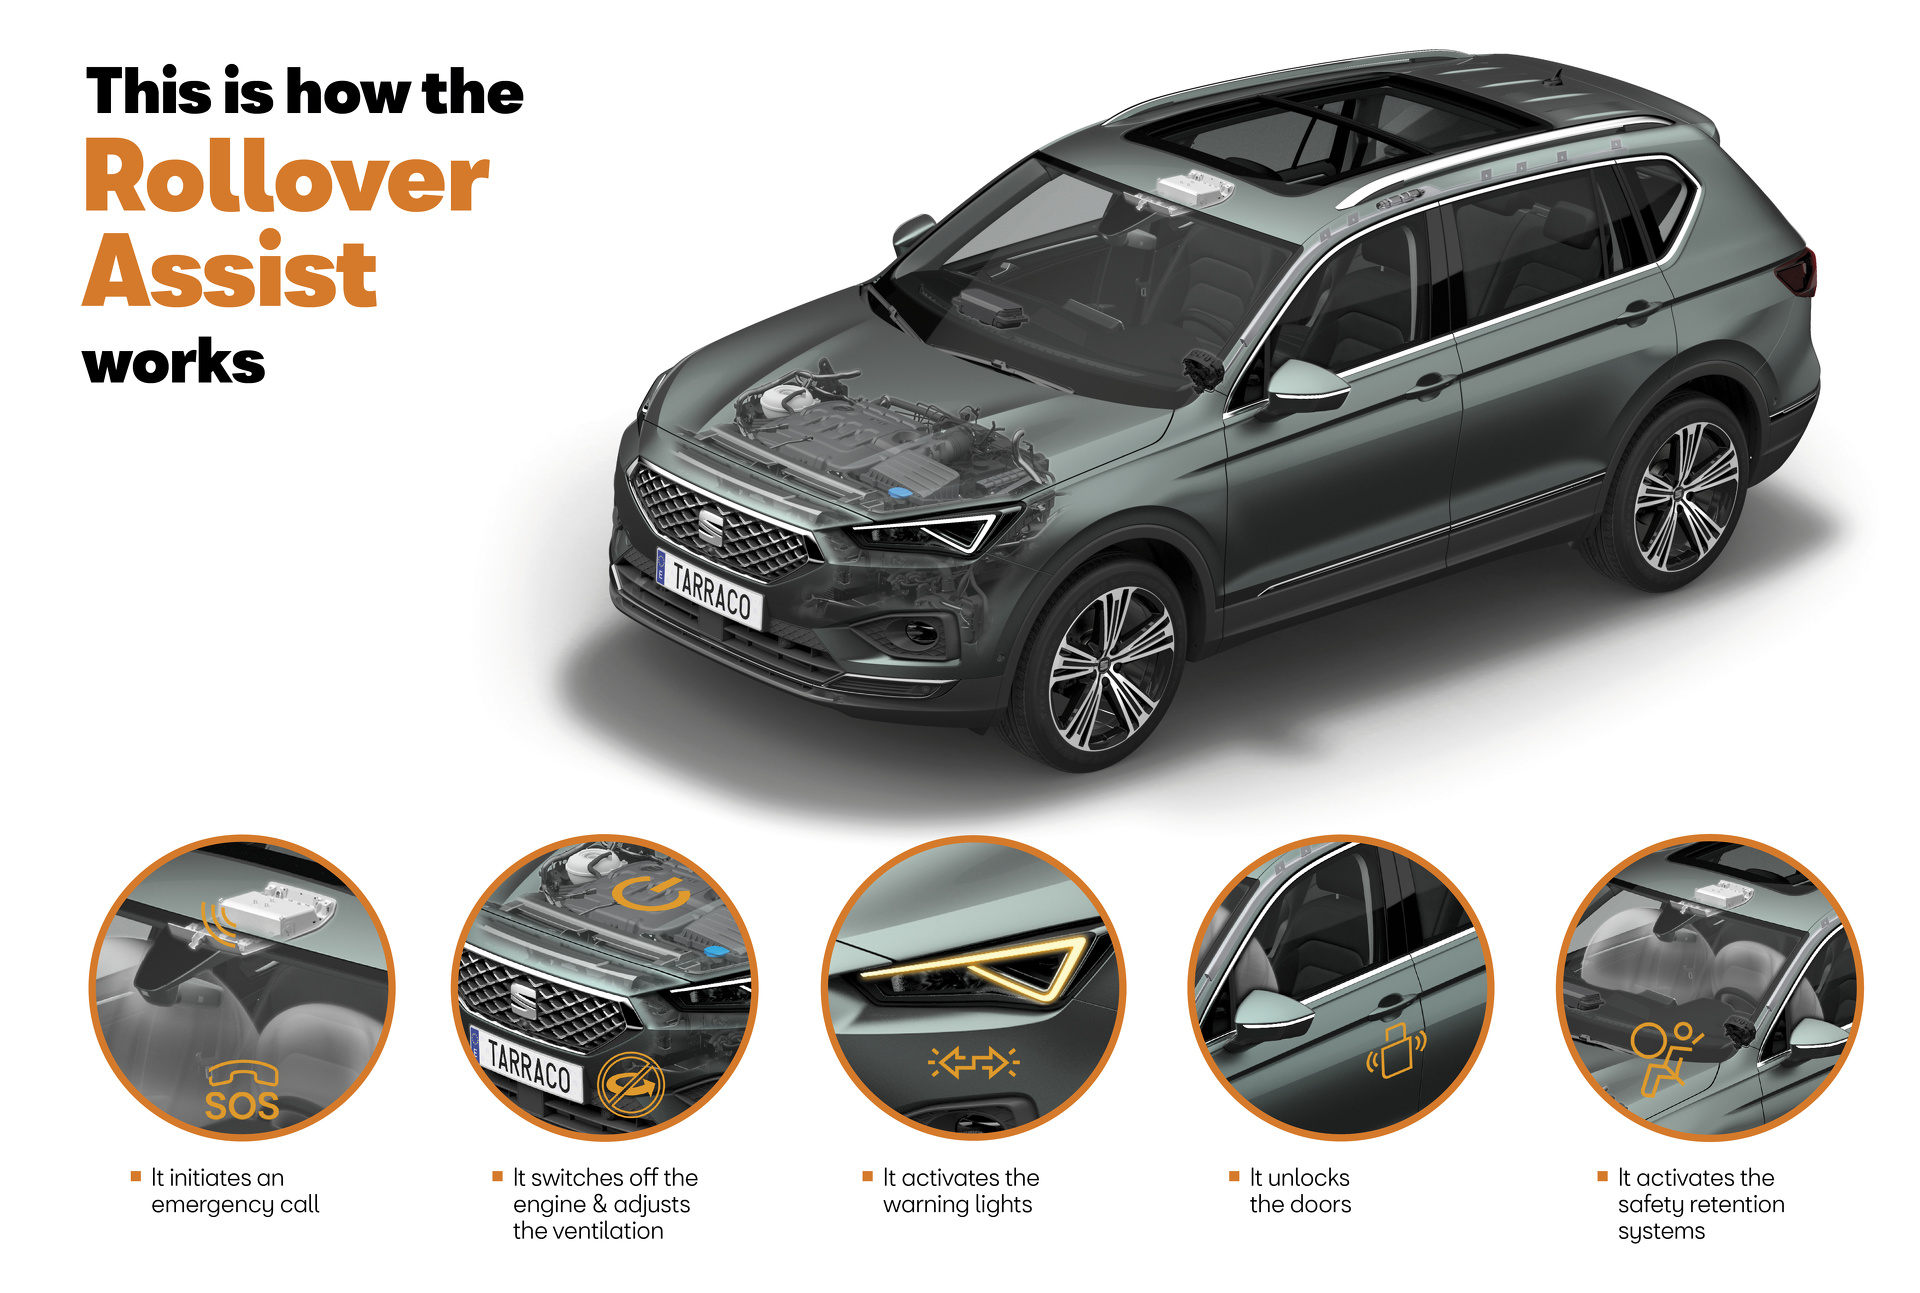 De SEAT Tarraco rollover assist.